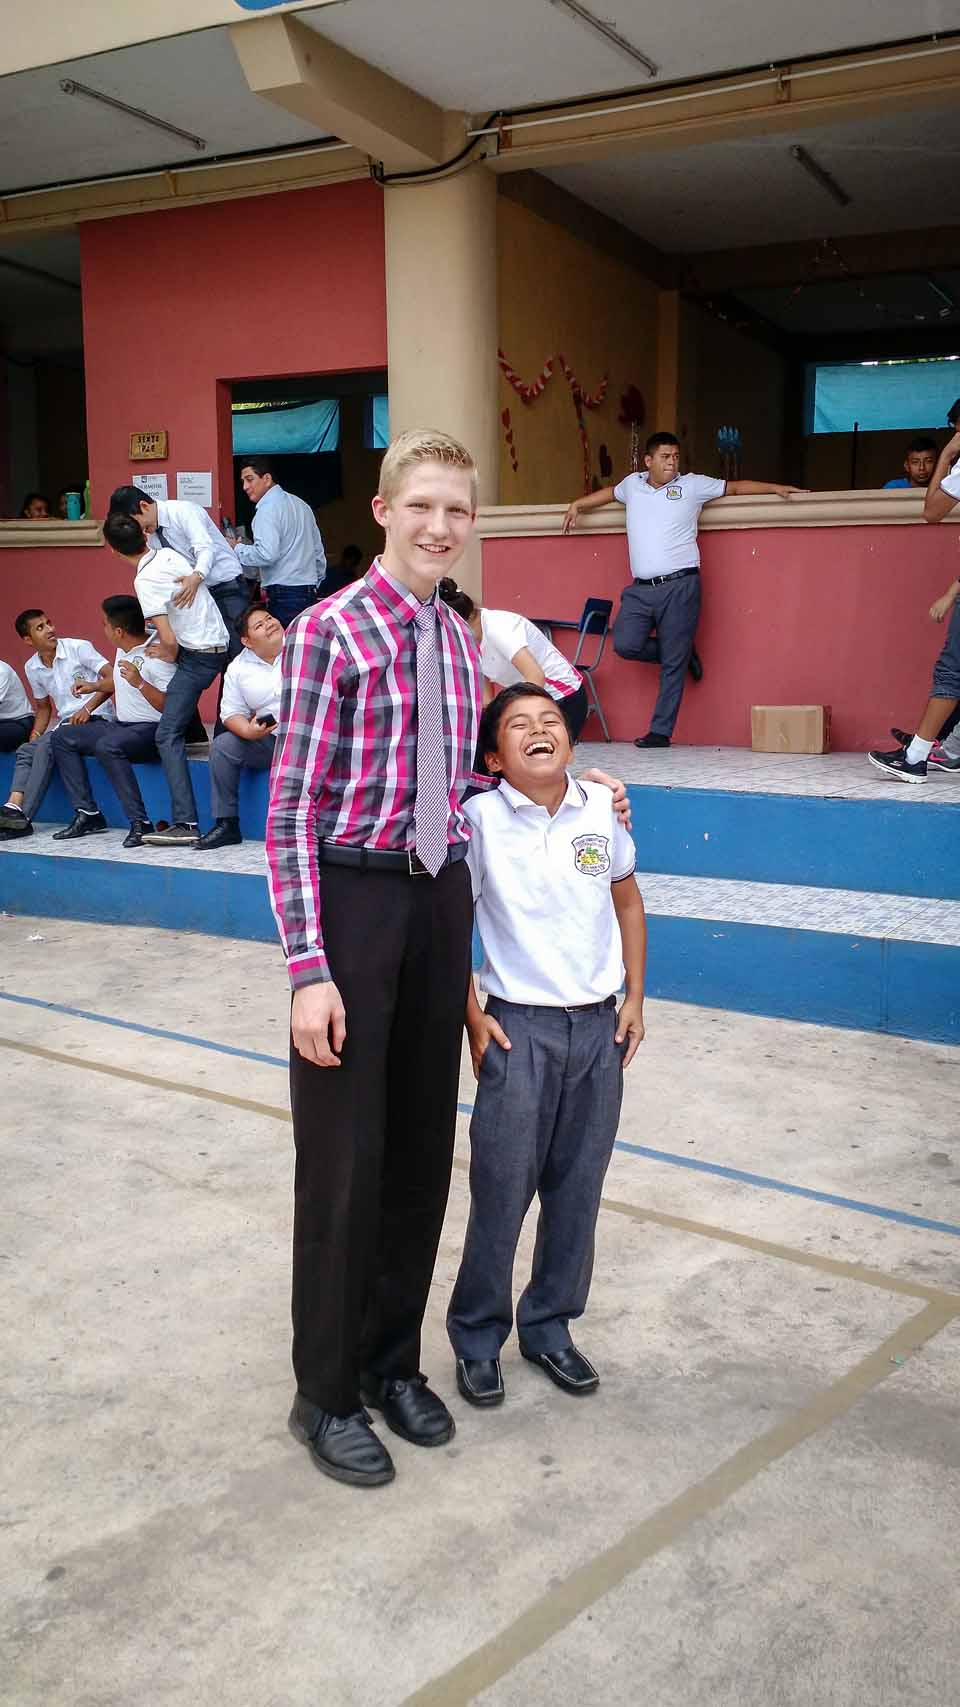 Silas and a new friend after our concert at this boy's school.